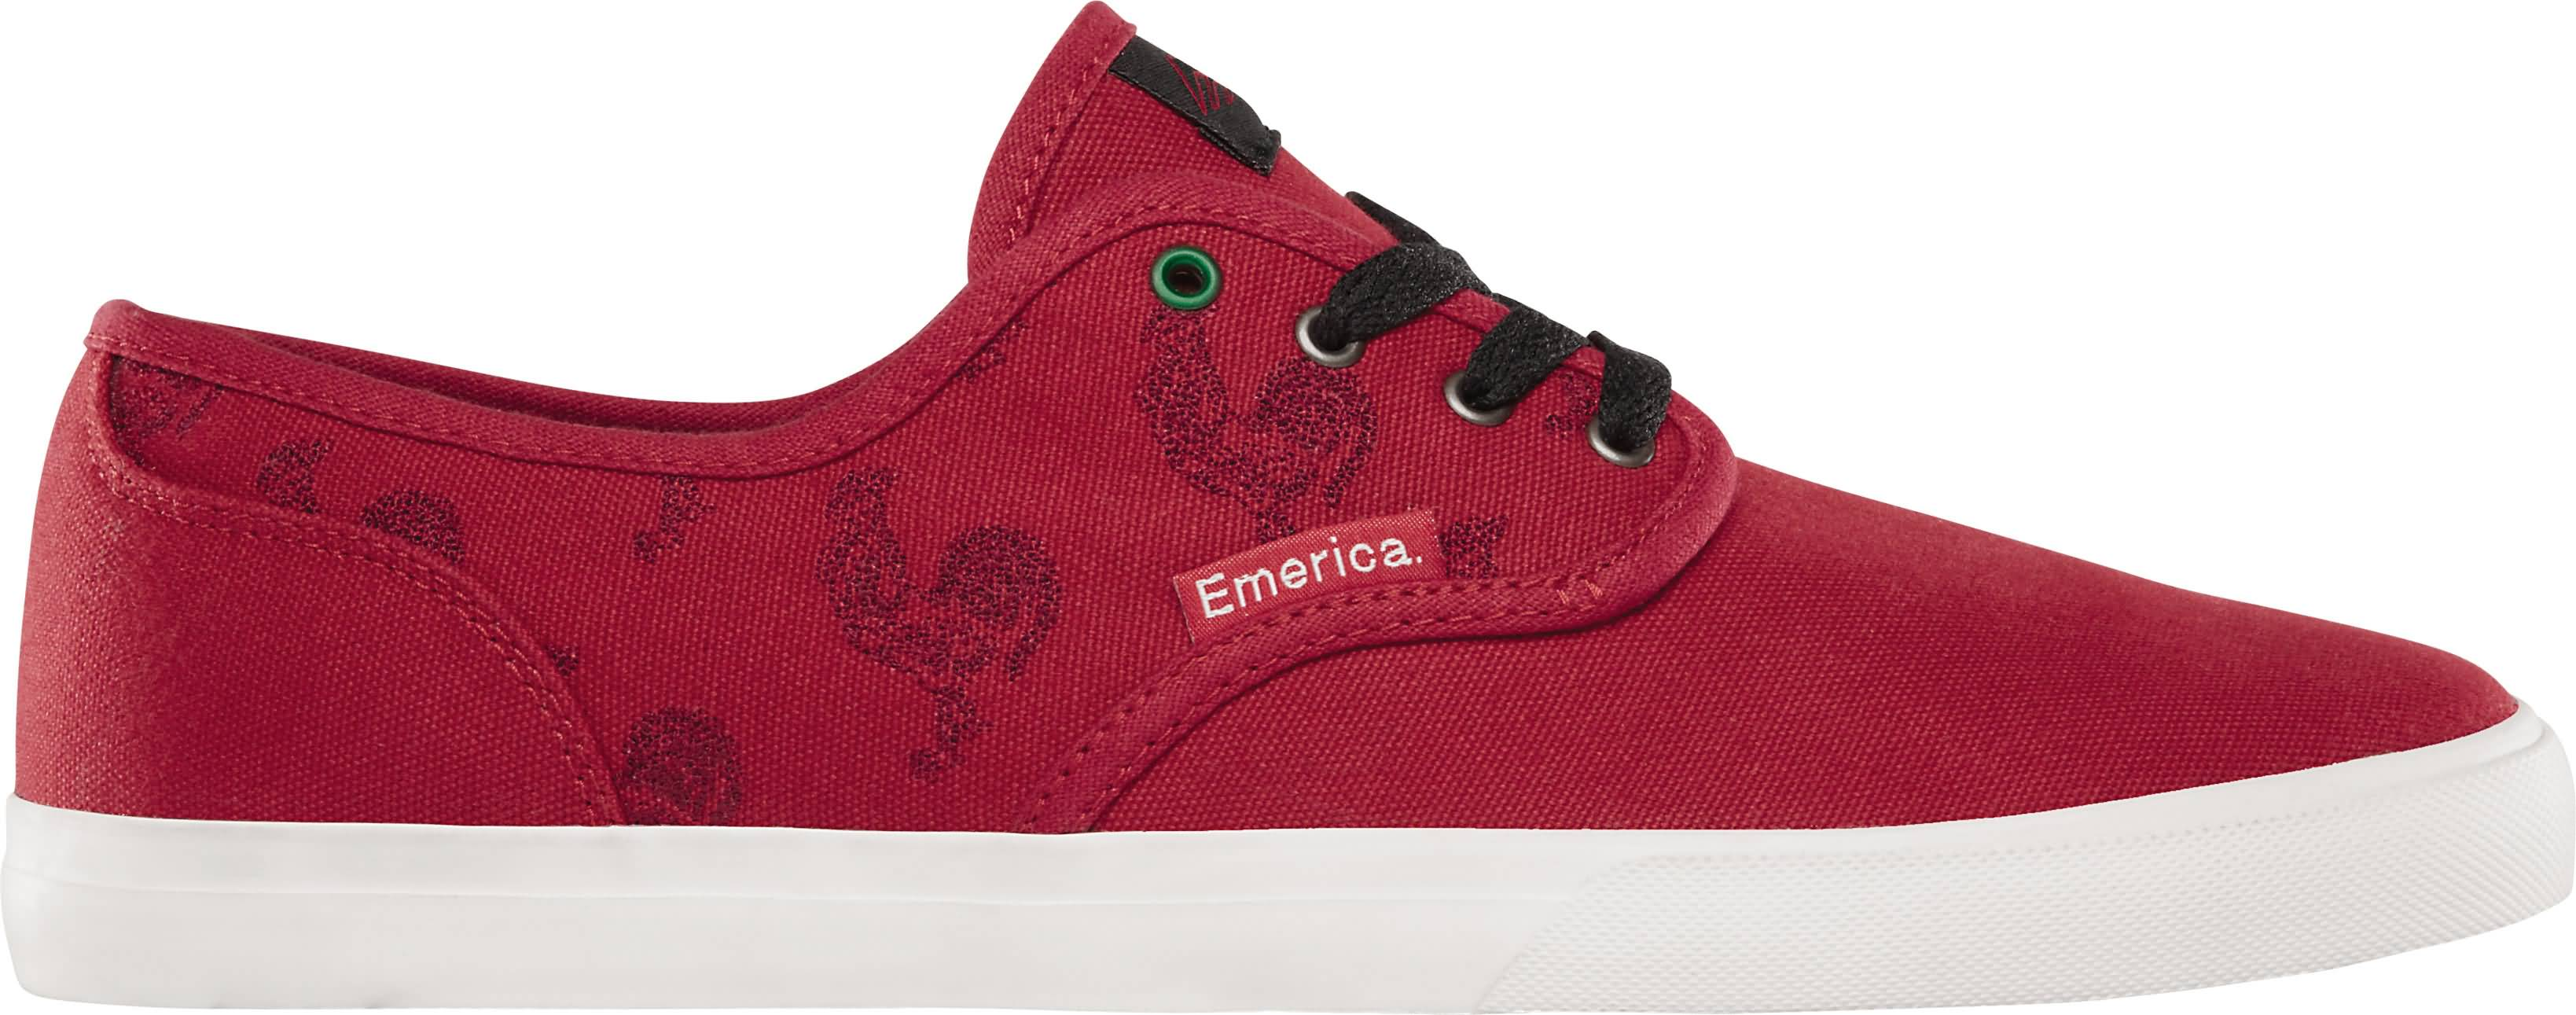 Emerica Skate Fall 2017 Huy Fong Foods Collab | Sriracha Sauce Collection